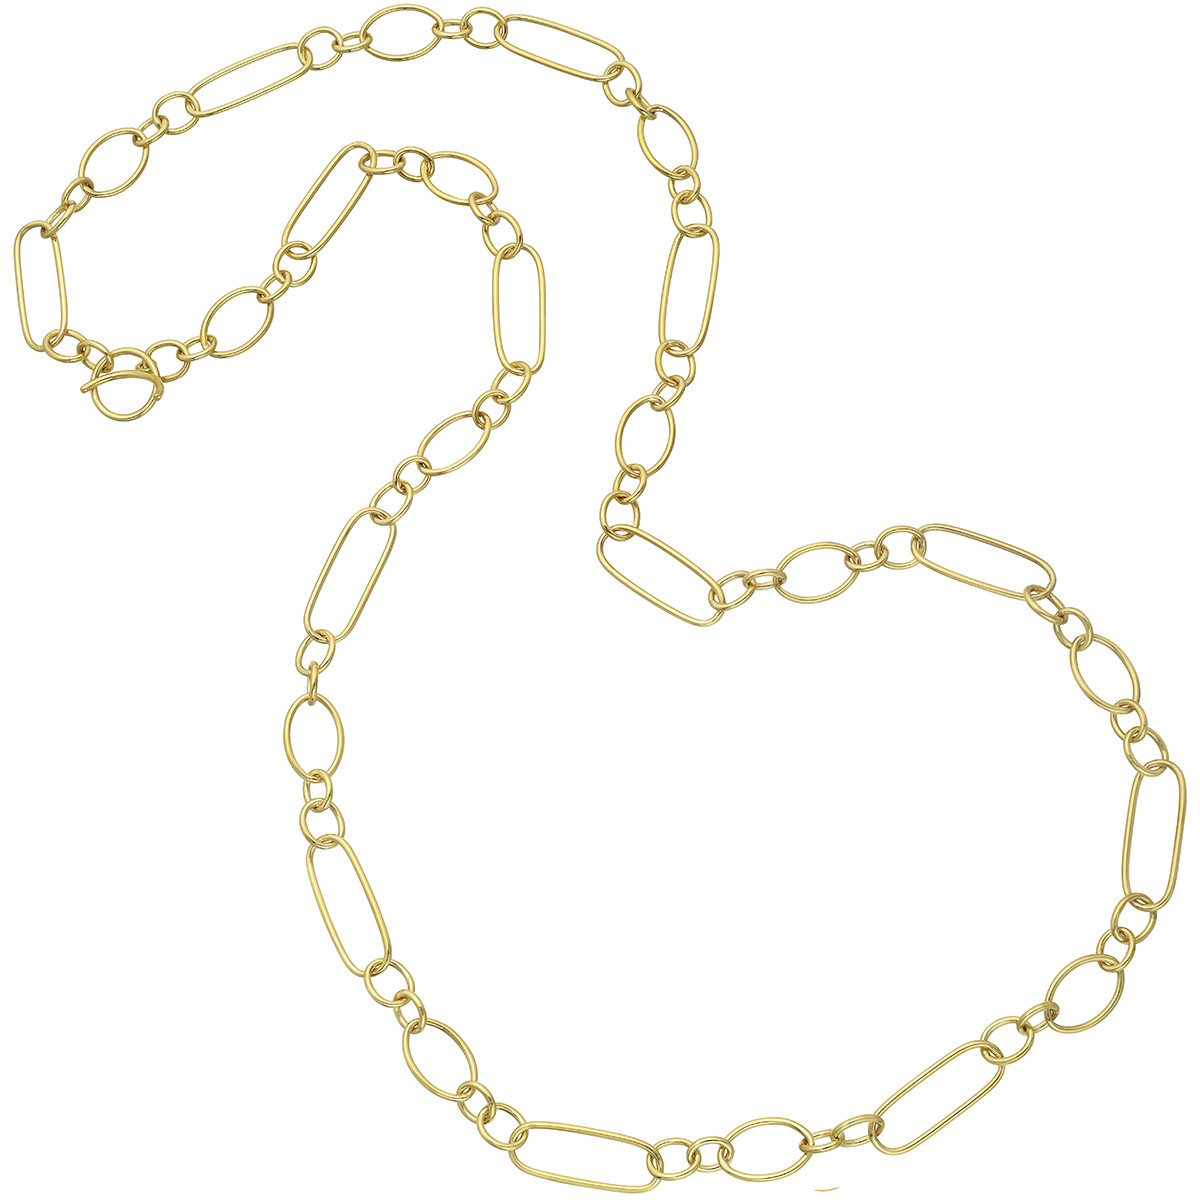 18k Yellow Gold Multisized Oval Link Long Necklace